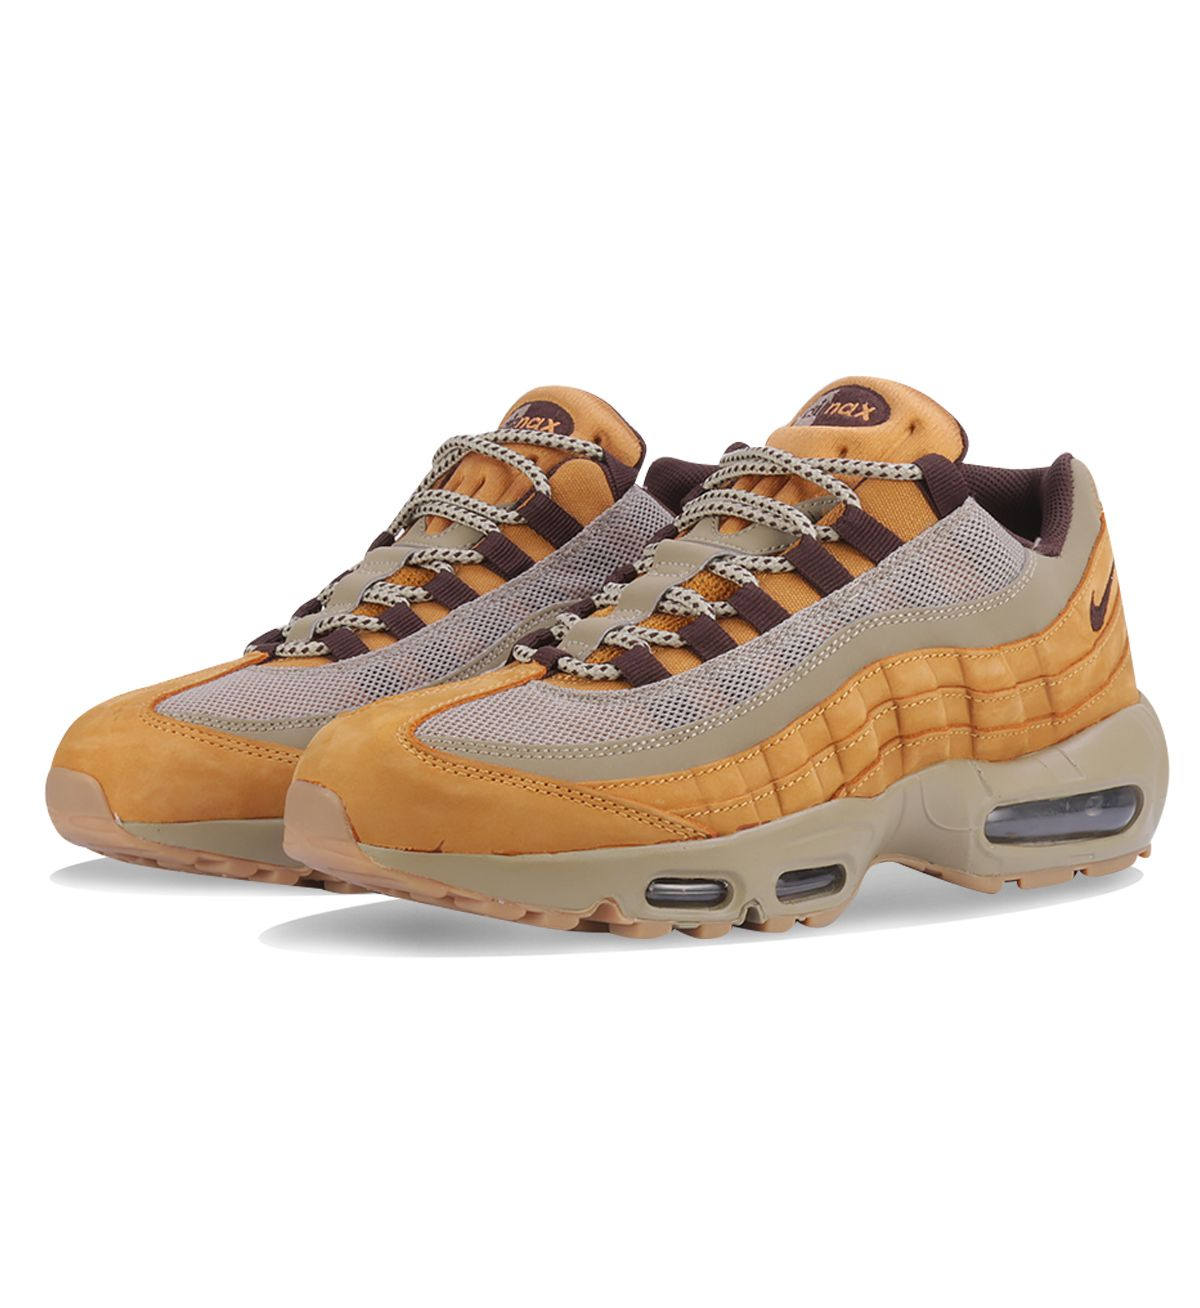 info for 8bbda 54b7c Nike Air Max 95 PRM Bronze   Baroque Brown   Bamboo - Nike This Nike Air Max  95 in Bronze has premium leather uppers, a Mini Swoosh, brown lace holds  and ...